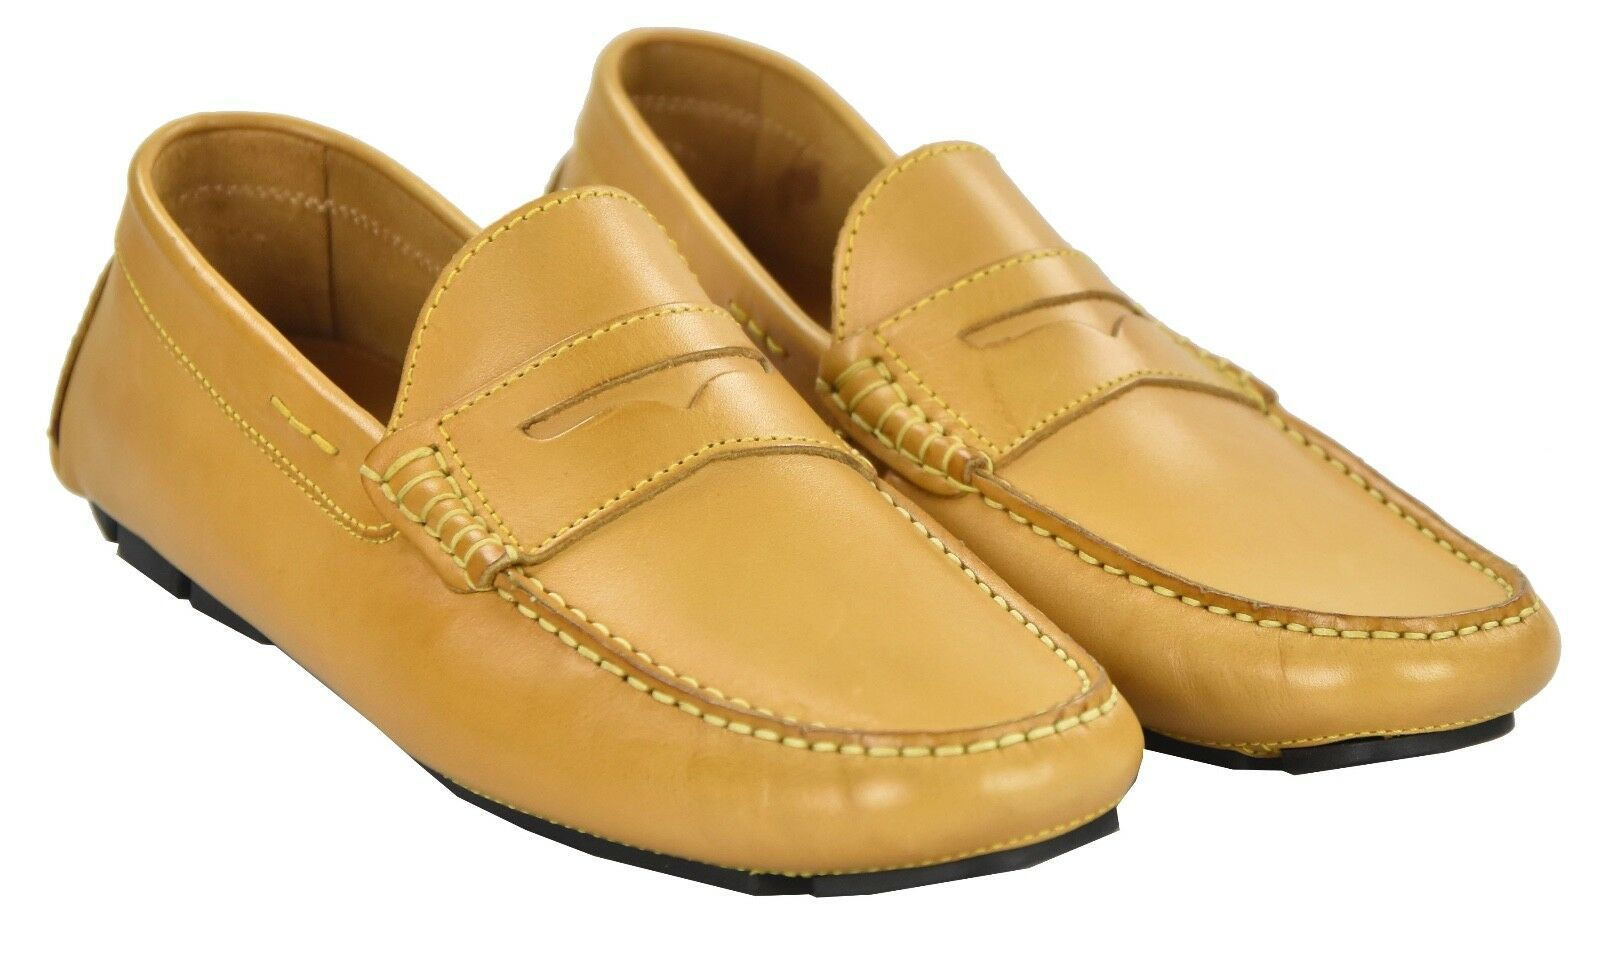 NEW KITON NAPOLI LOAFERS SHOES 100% LEATHER SIZE 8 US 41 O34